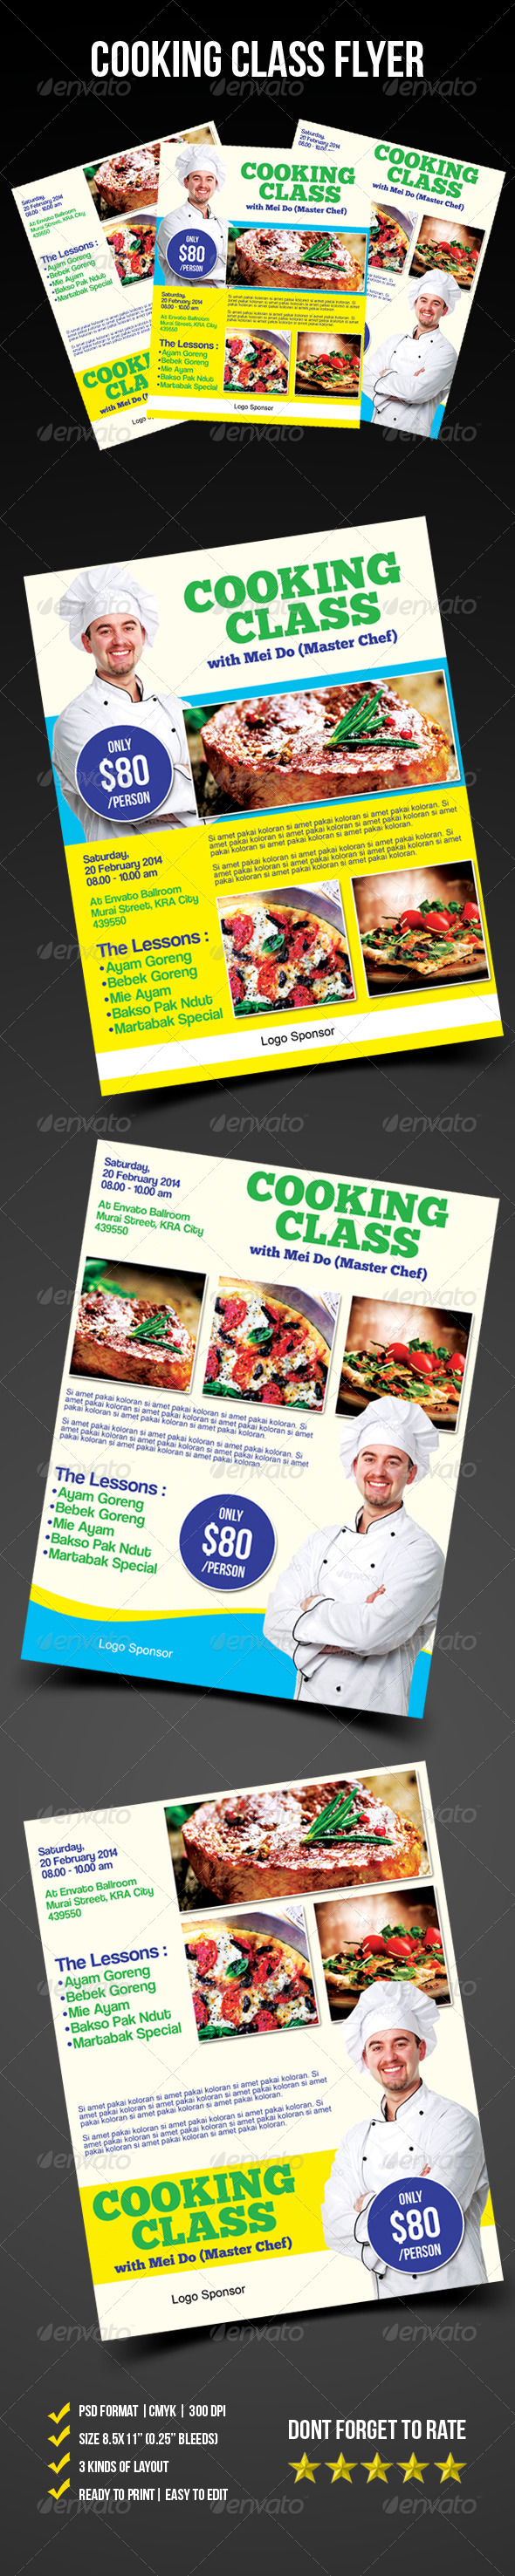 Cooking Class Flyer - Corporate Flyers